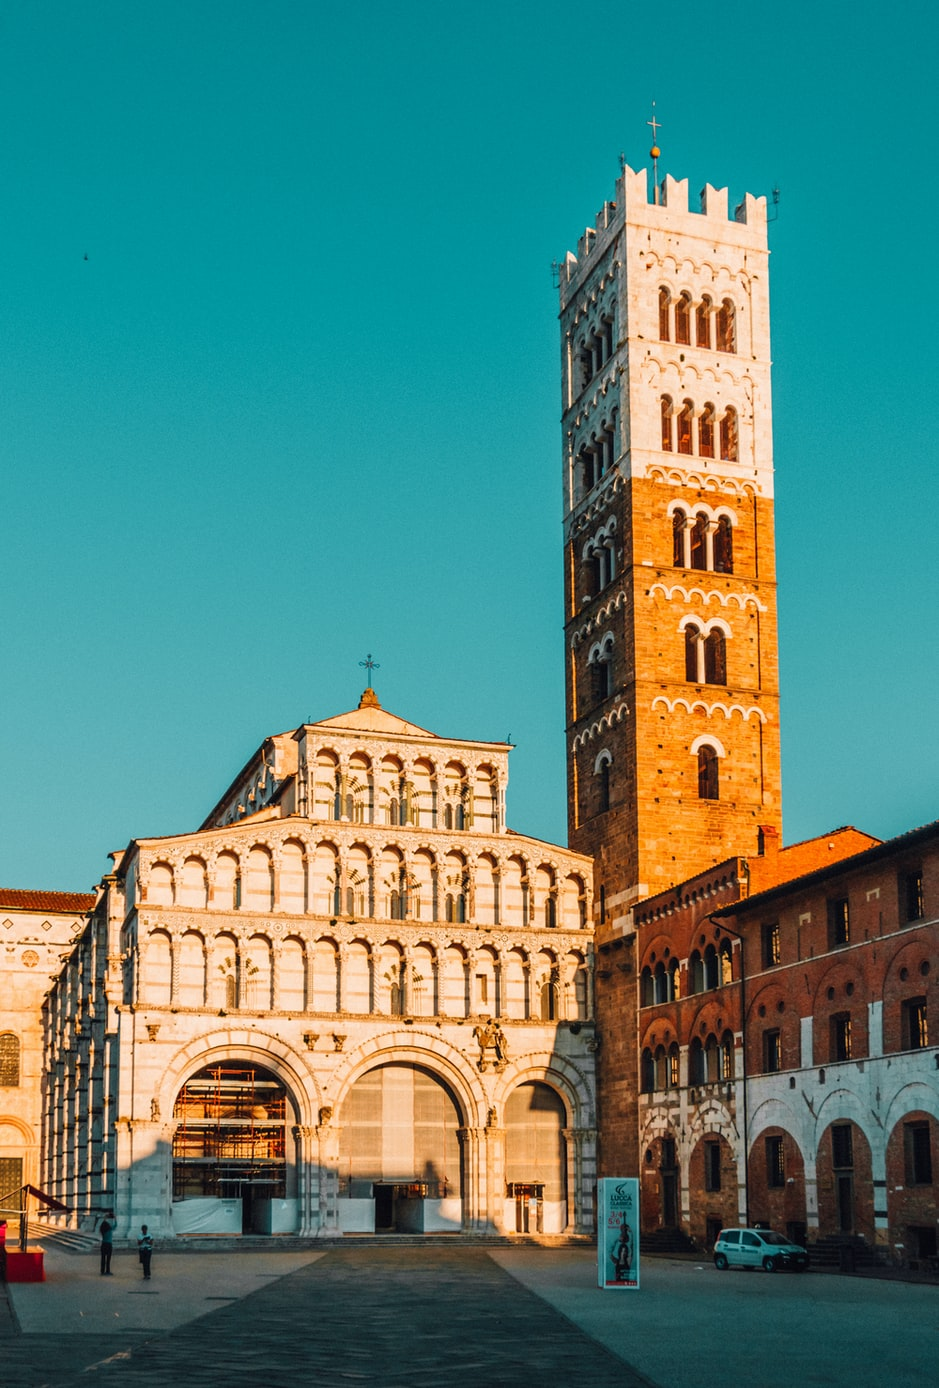 tall orange and white buildings in Lucca, Italy